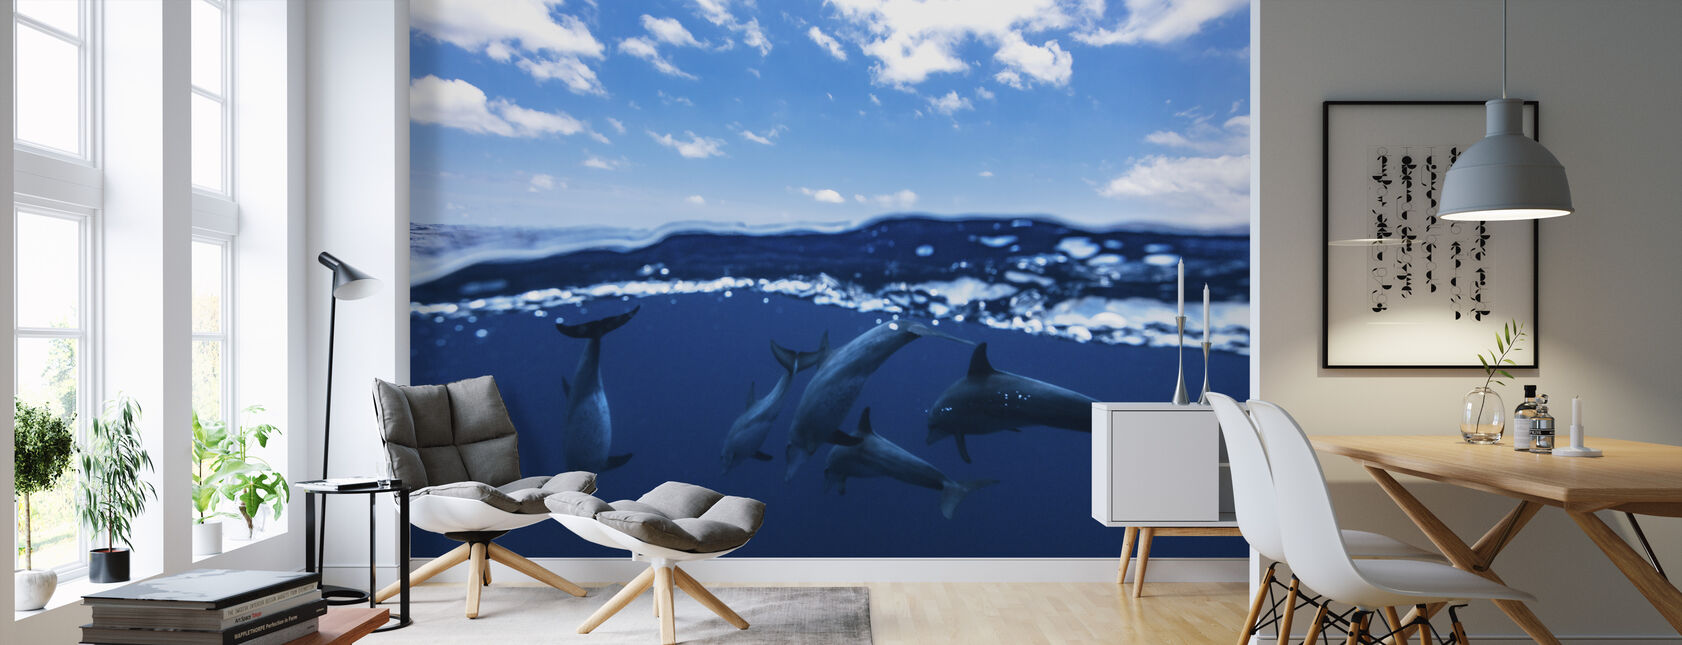 Between Air and Water - Wallpaper - Living Room